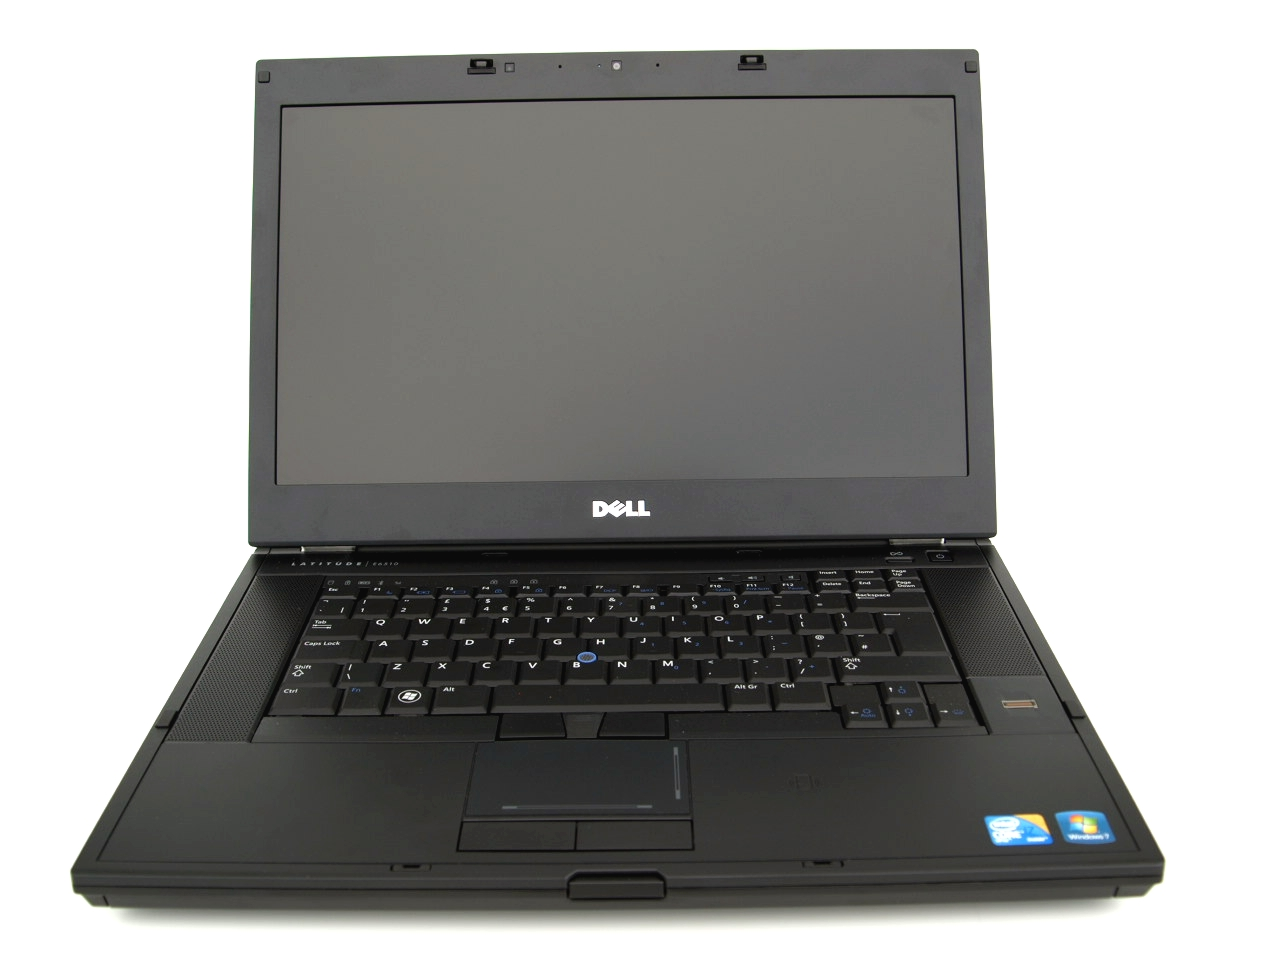 Test Dell Vostro 15 5568 I7 7500U 940MX Laptop 264160 0 furthermore YELn in addition Kiwi Fruit Slices Cut Macro Green Wallpaper moreover Samsung Notebook 9 13 Inch together with Dell Latitude E6510 33036 0. on dell xps desktop